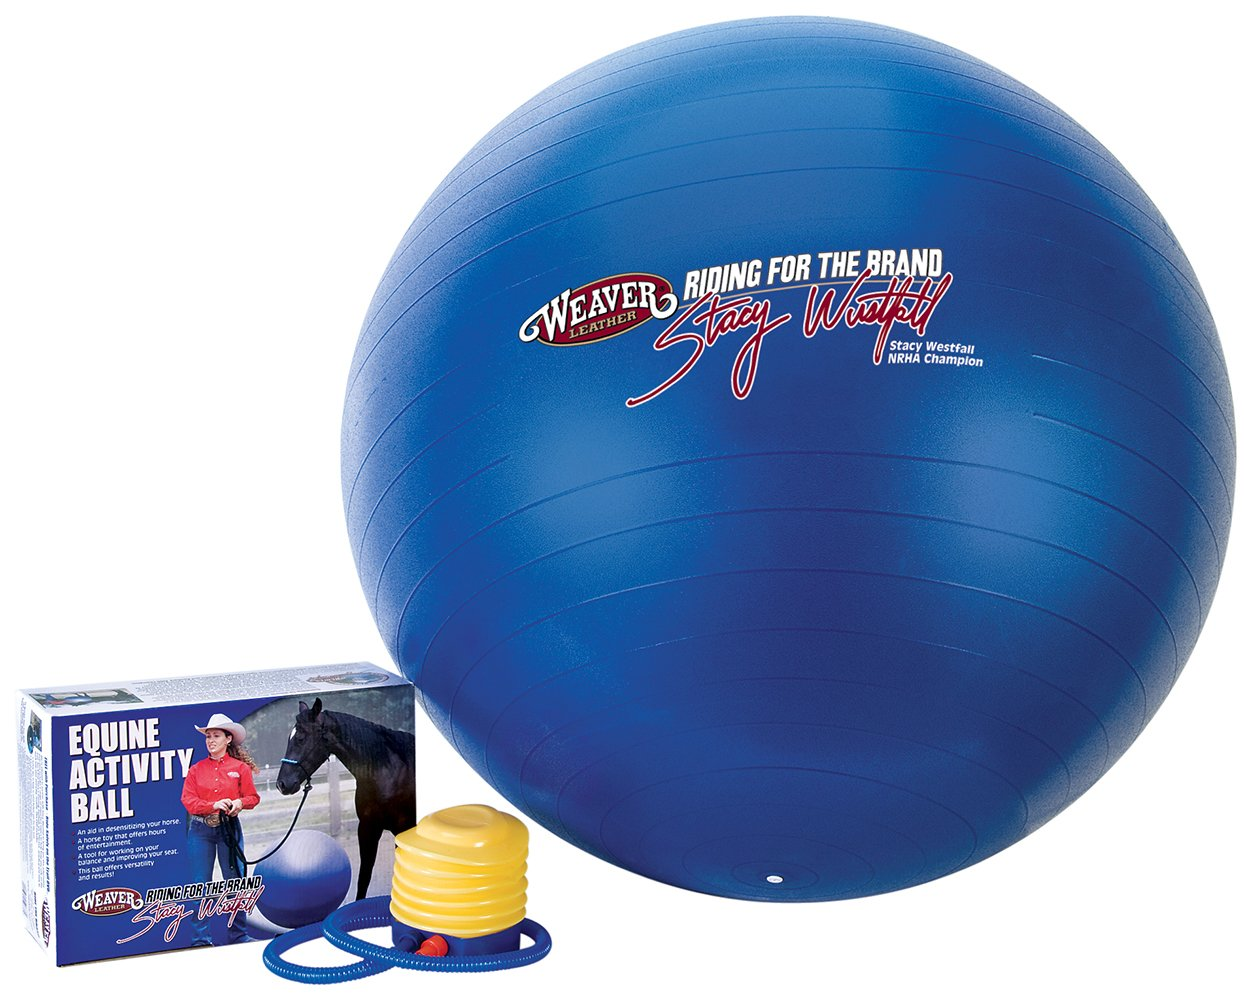 Weaver Leather Stacy Westfall Activity Ball, Medium, Blue by Weaver Leather